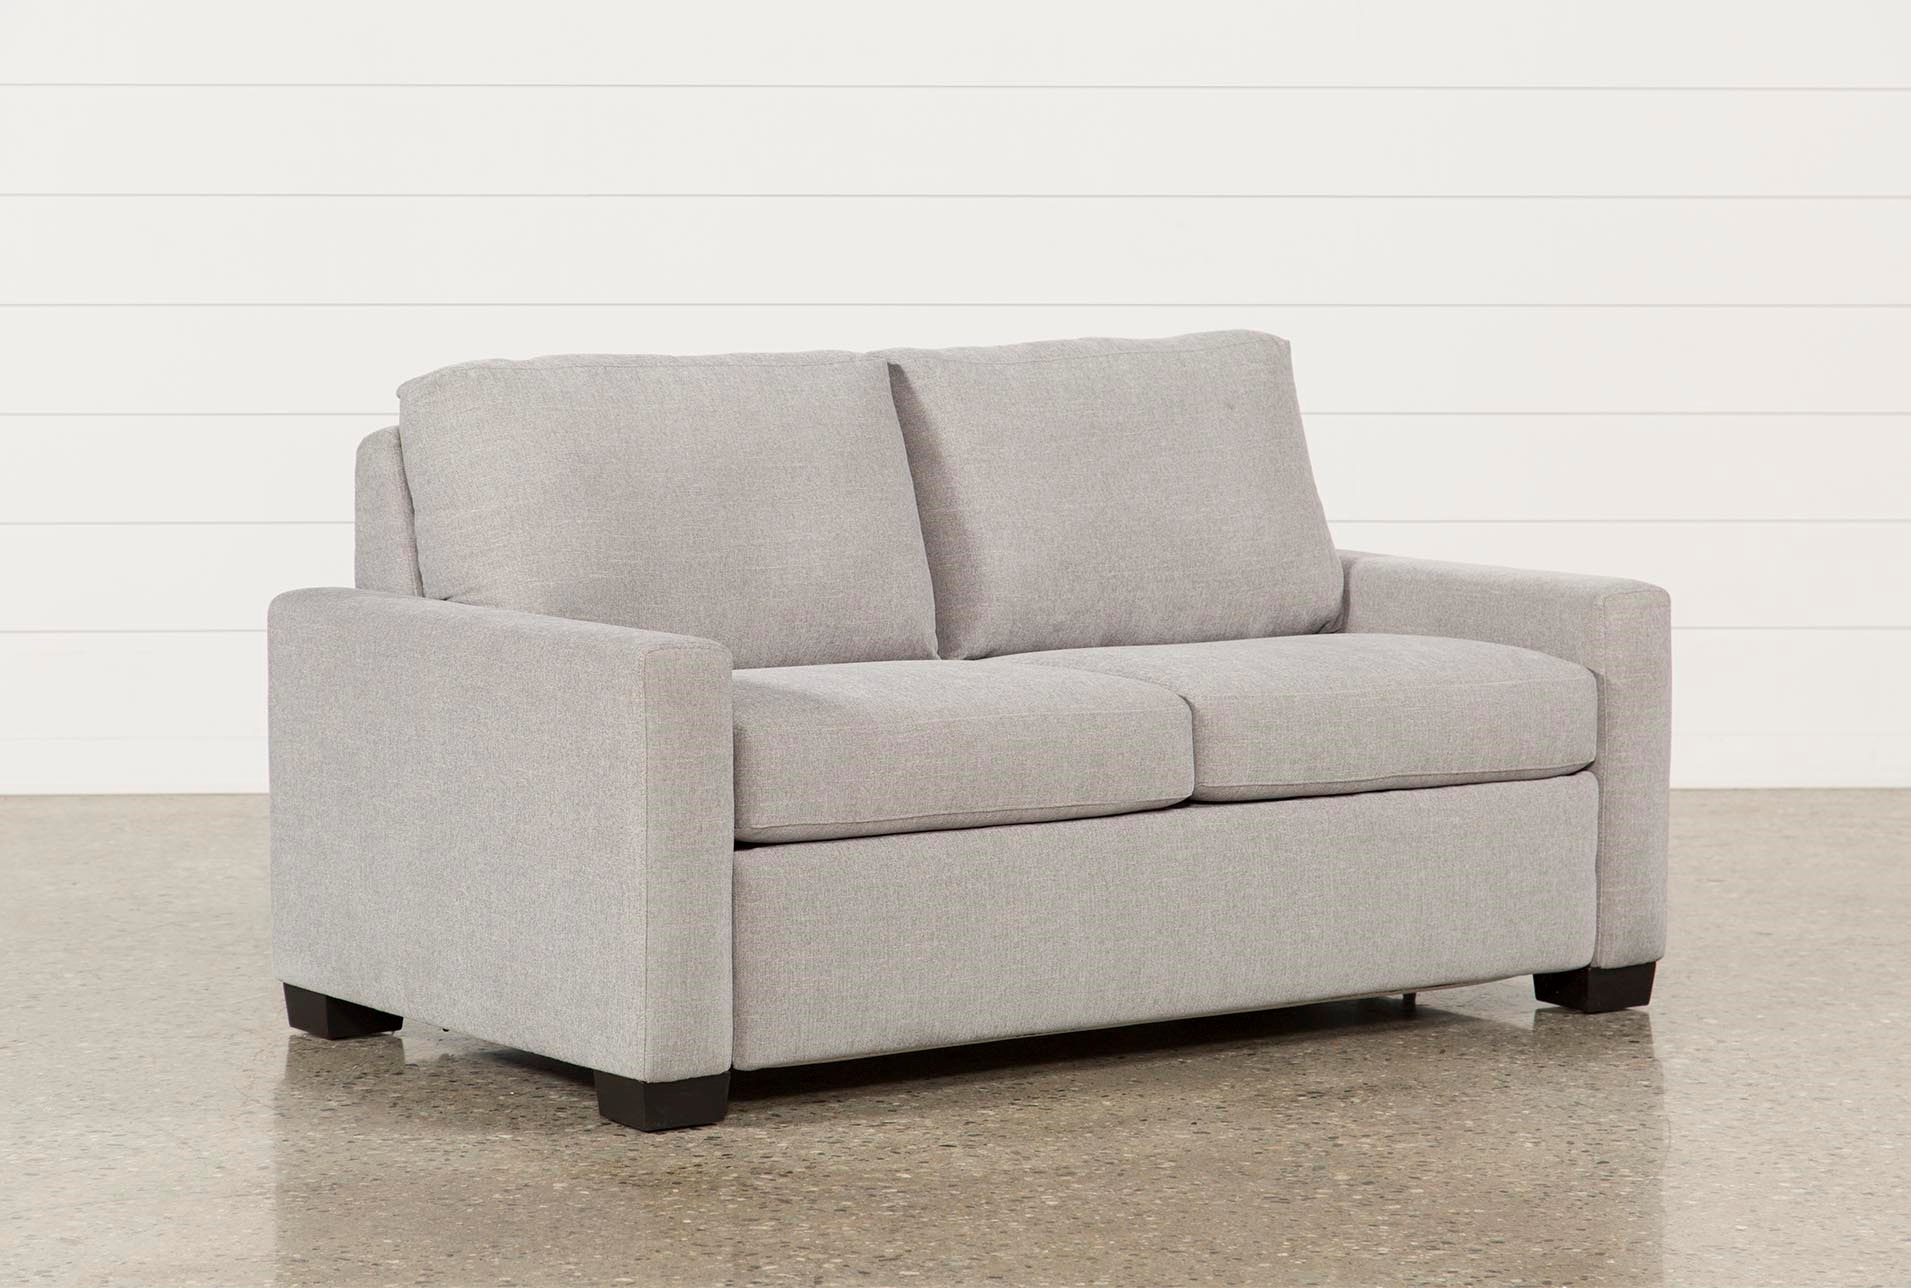 Mackenzie Silverpine Full Sofa Sleeper Qty 1 Has Been Successfully Added To Your Cart